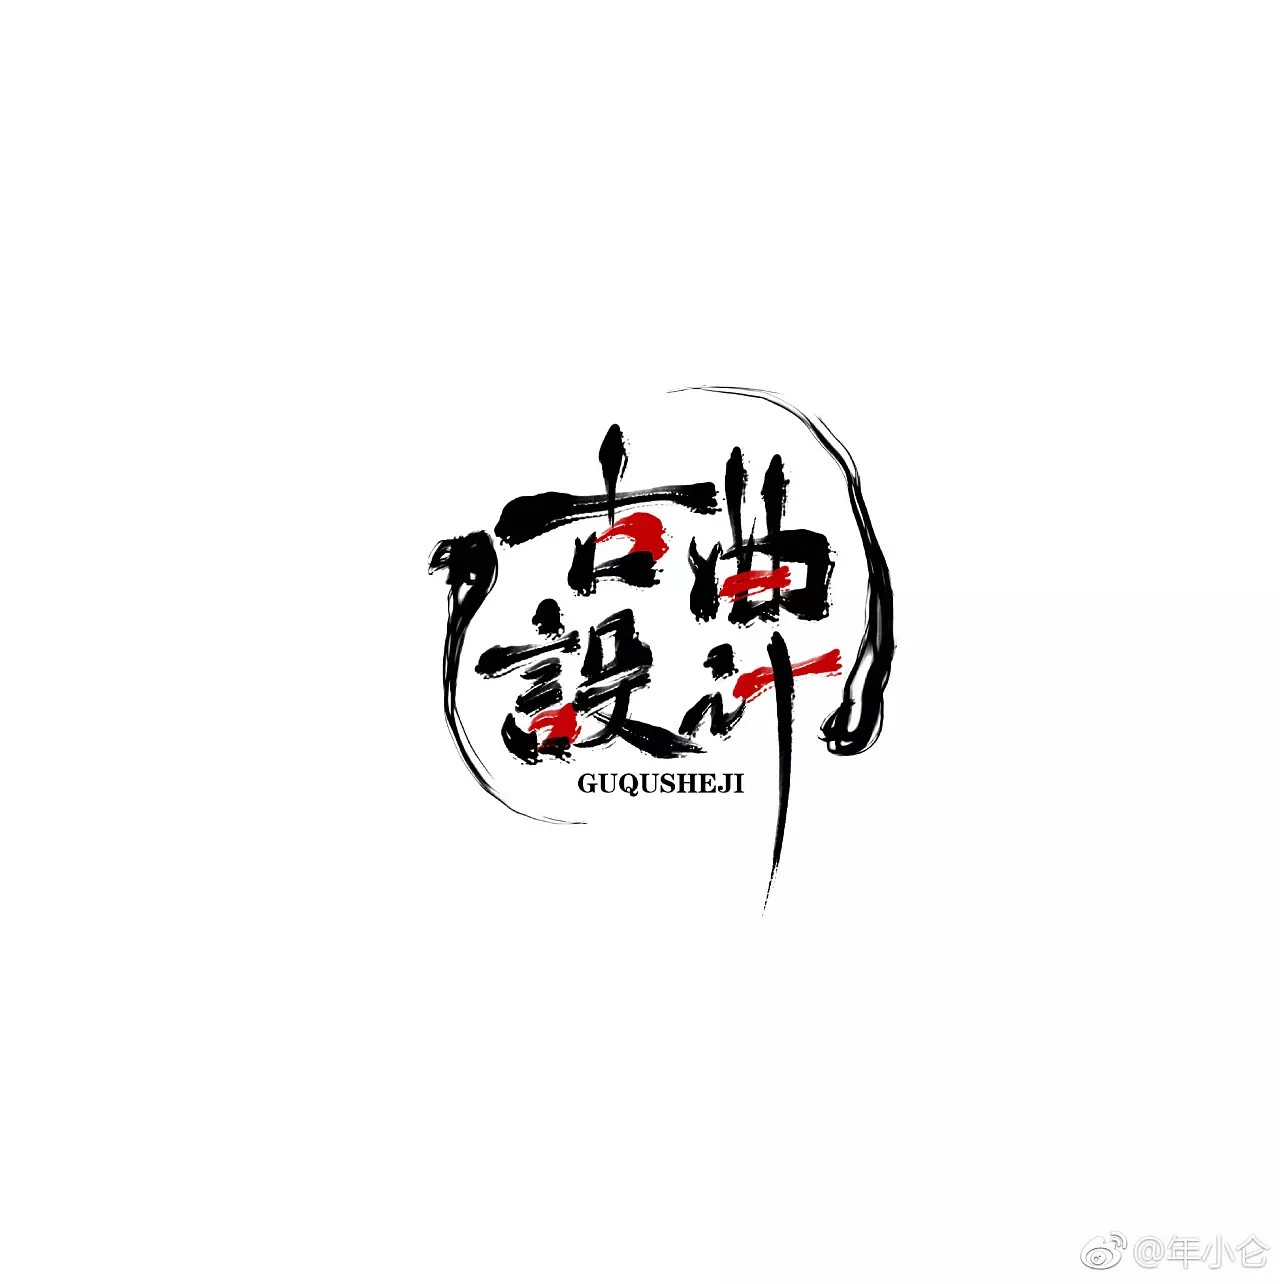 8P Commercial font design - traditional Chinese ink painting style